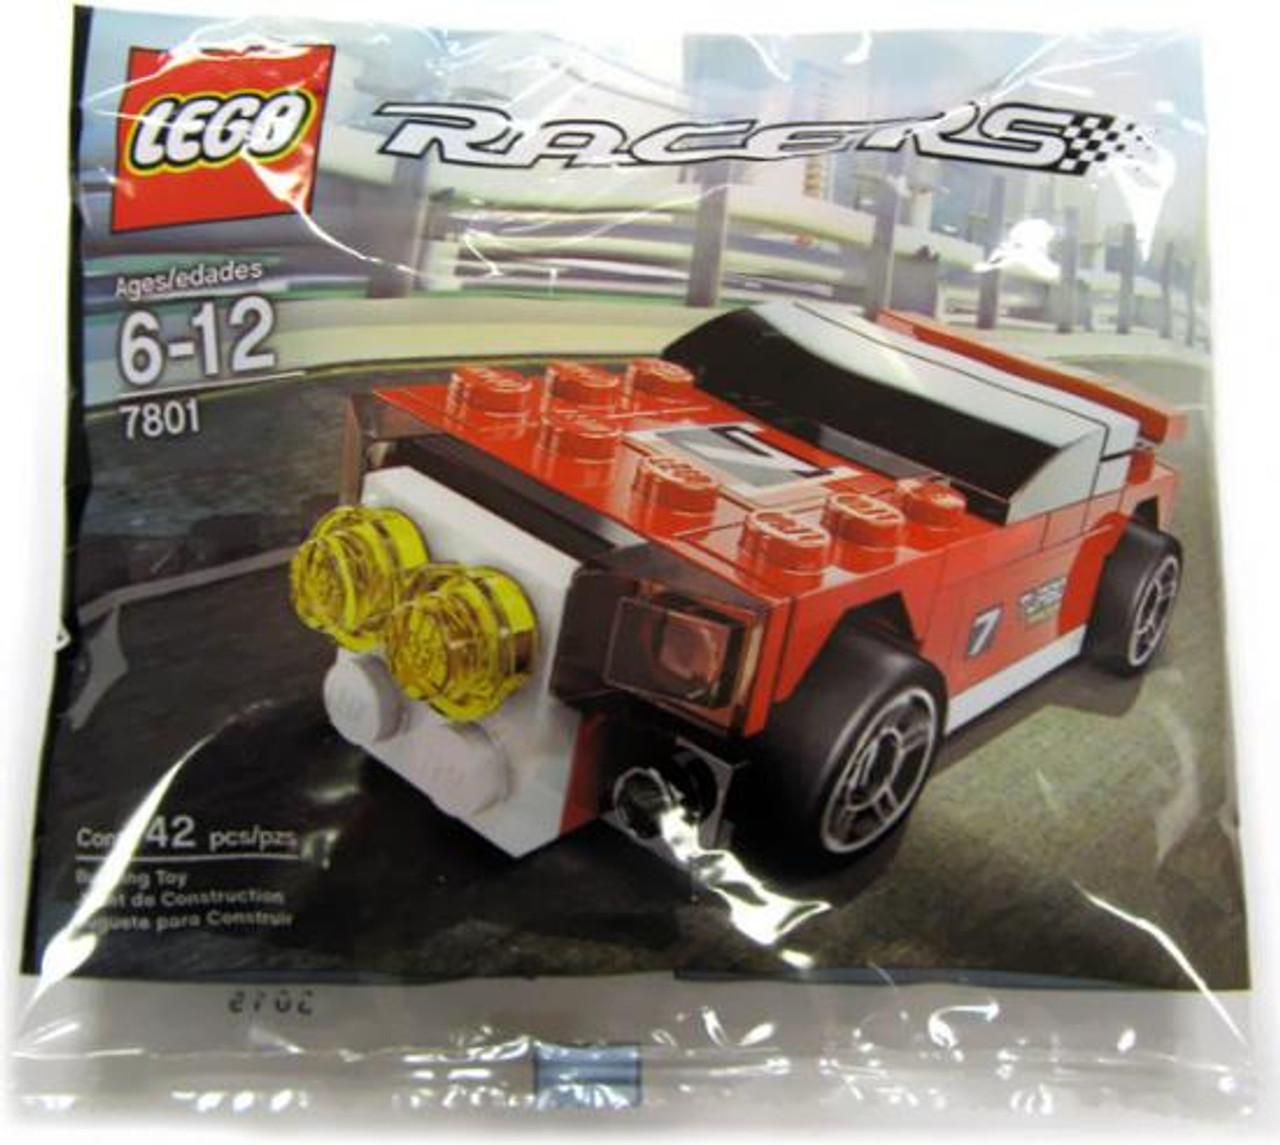 LEGO Racers Rally Racer Mini Set #7801 [Bagged]